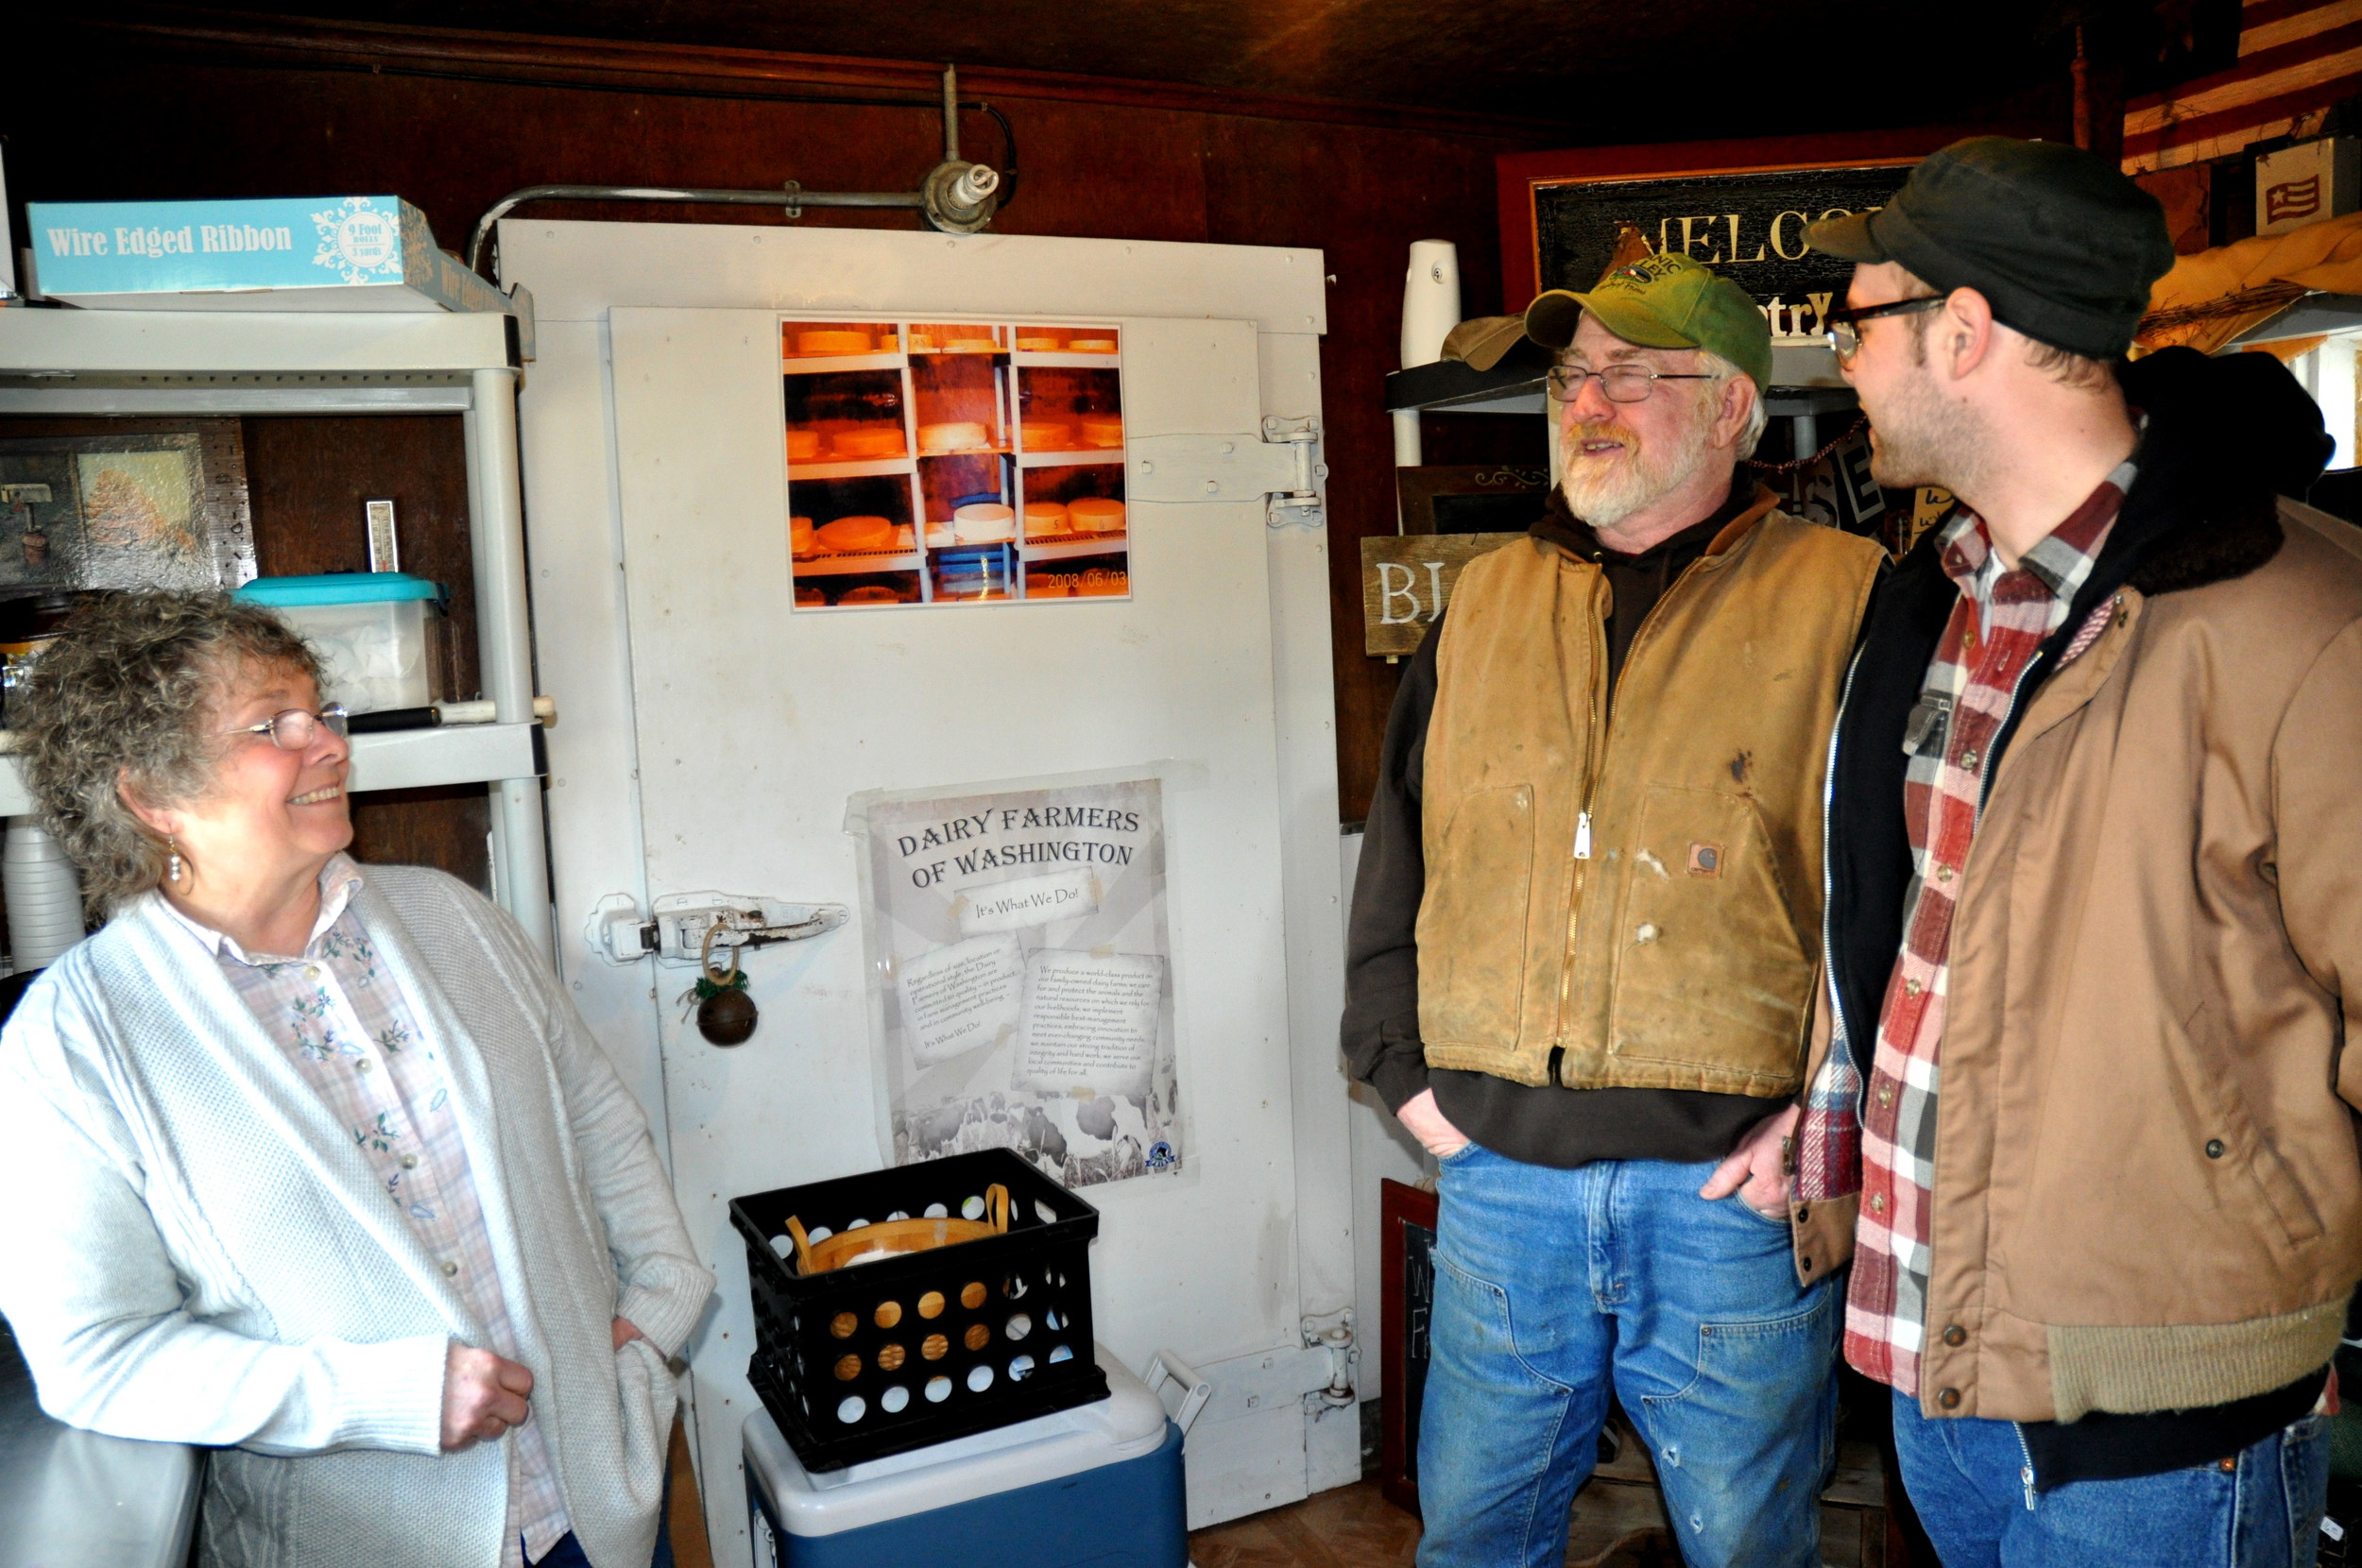 Sharon (left) & Gary McCool (center) chat with our own Gil Youenes at Rosecrest Farm. Photo copyright 2013 by Zachary D. Lyons.